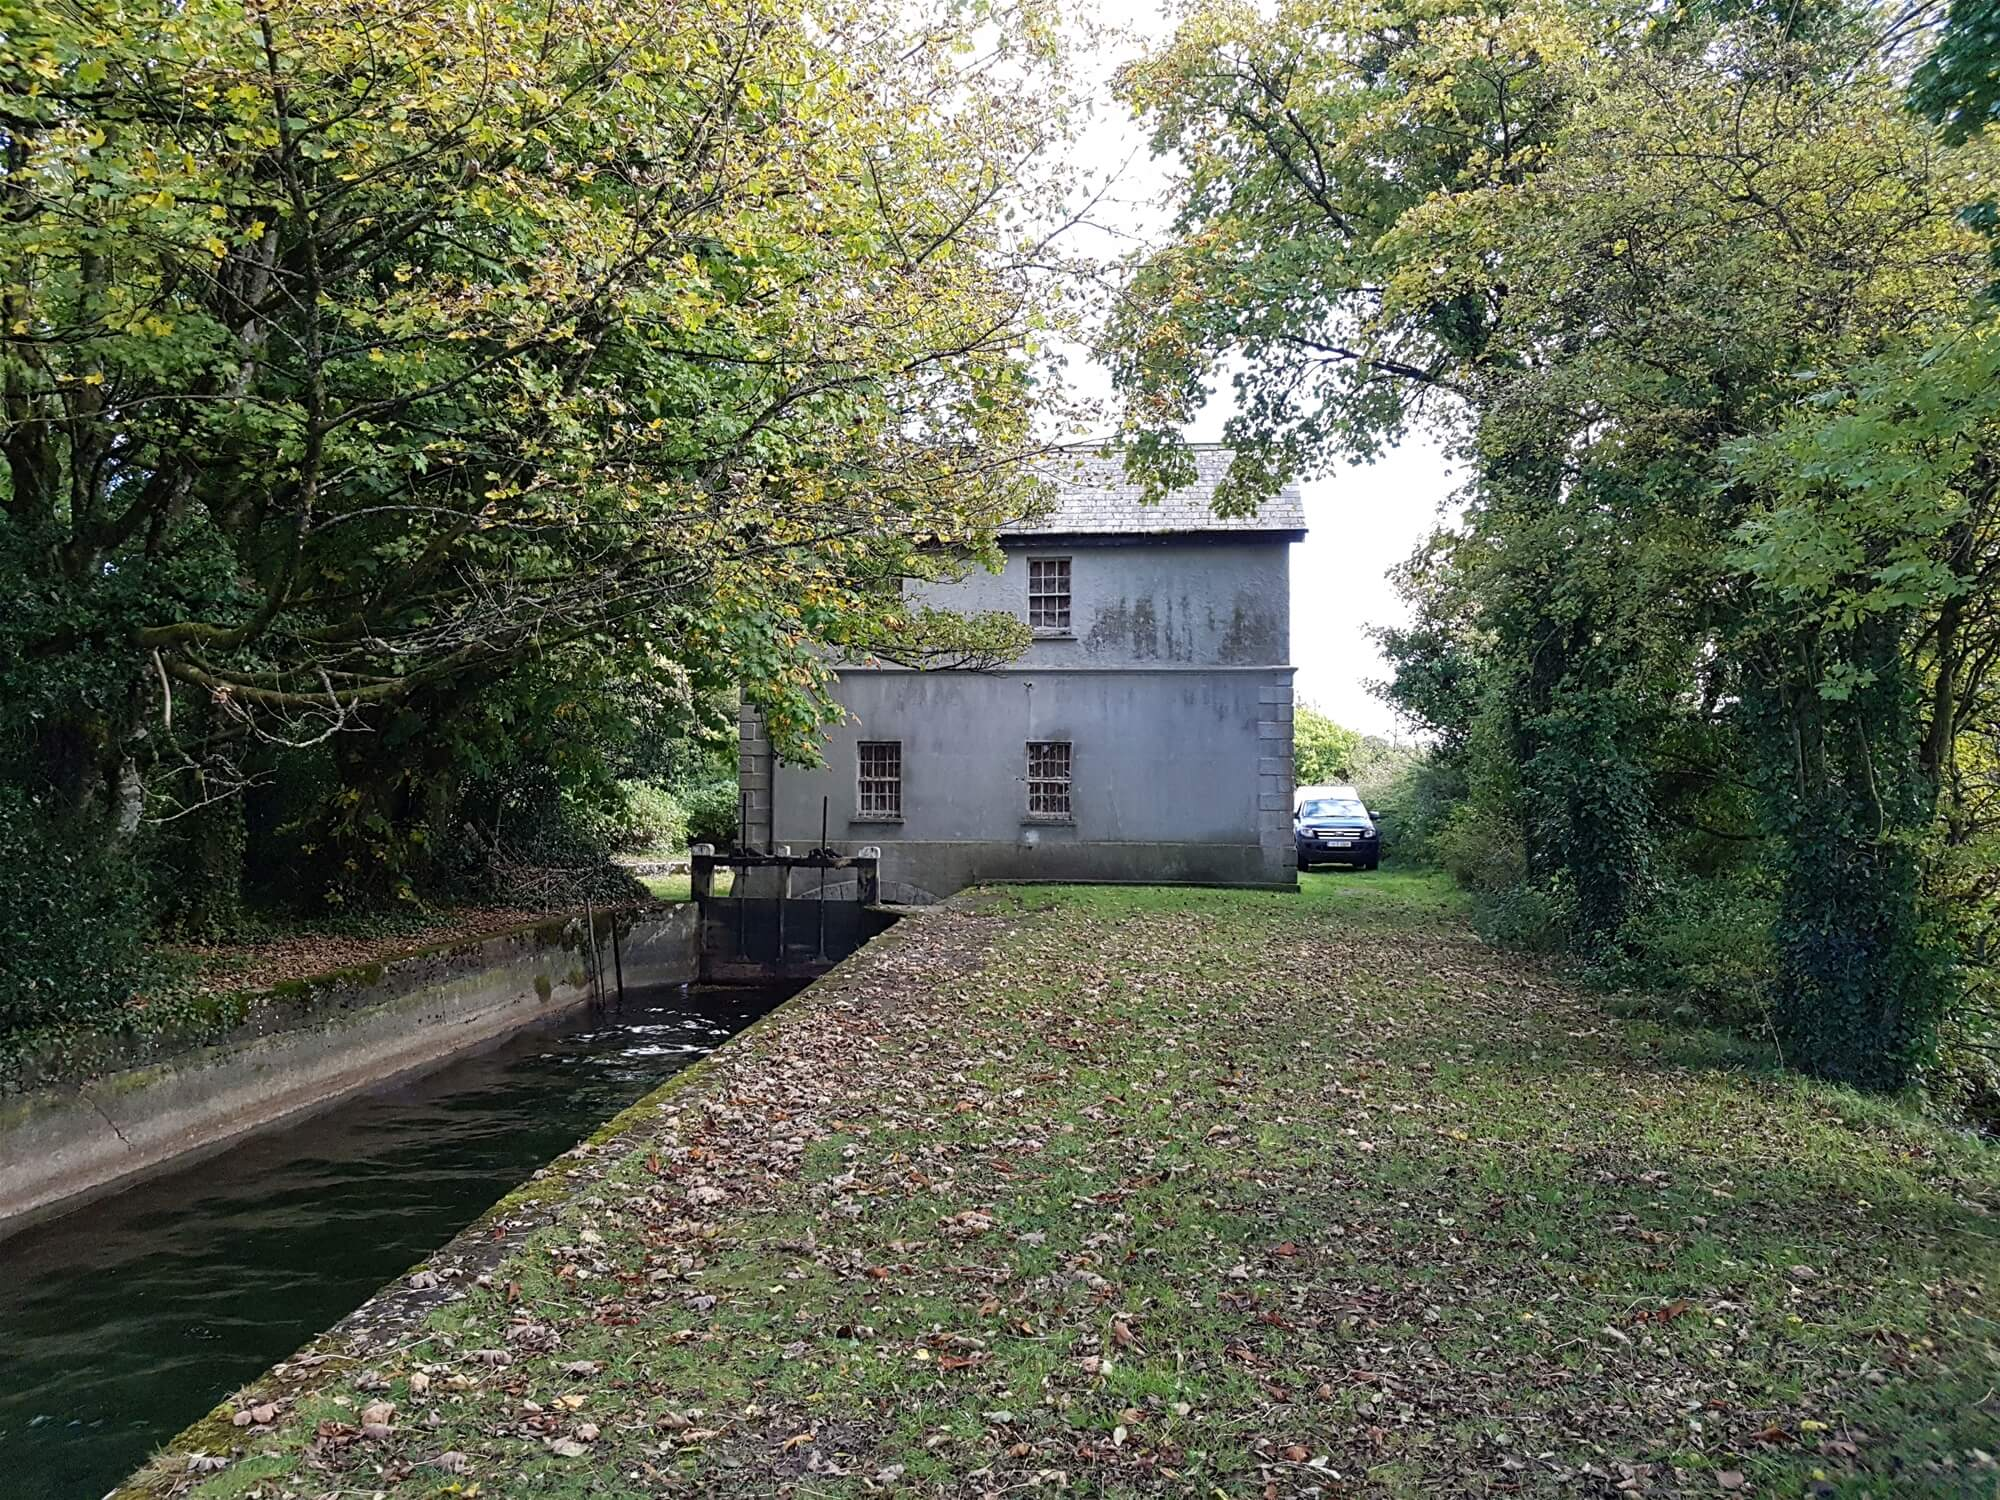 Lough Owel Sluice House